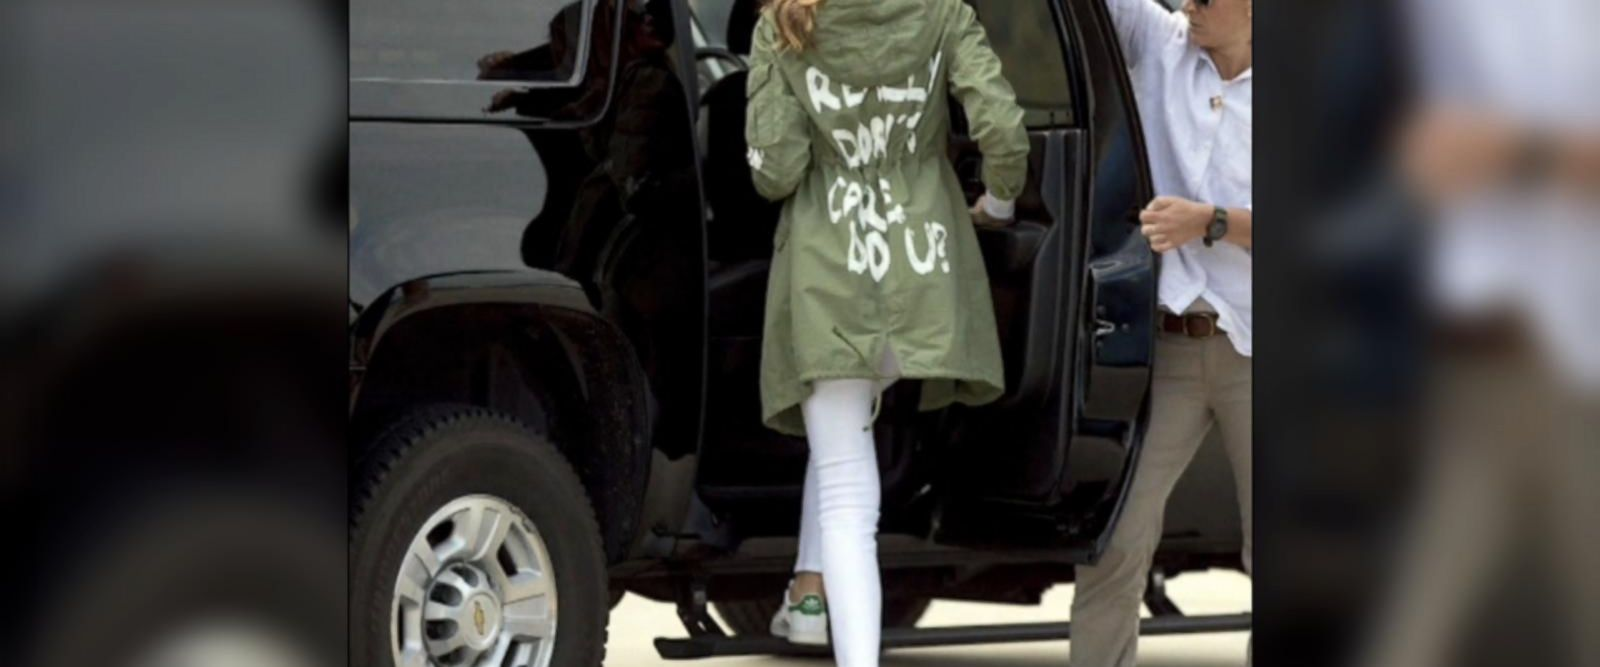 VIDEO: First lady wears controversial jacket to border visit